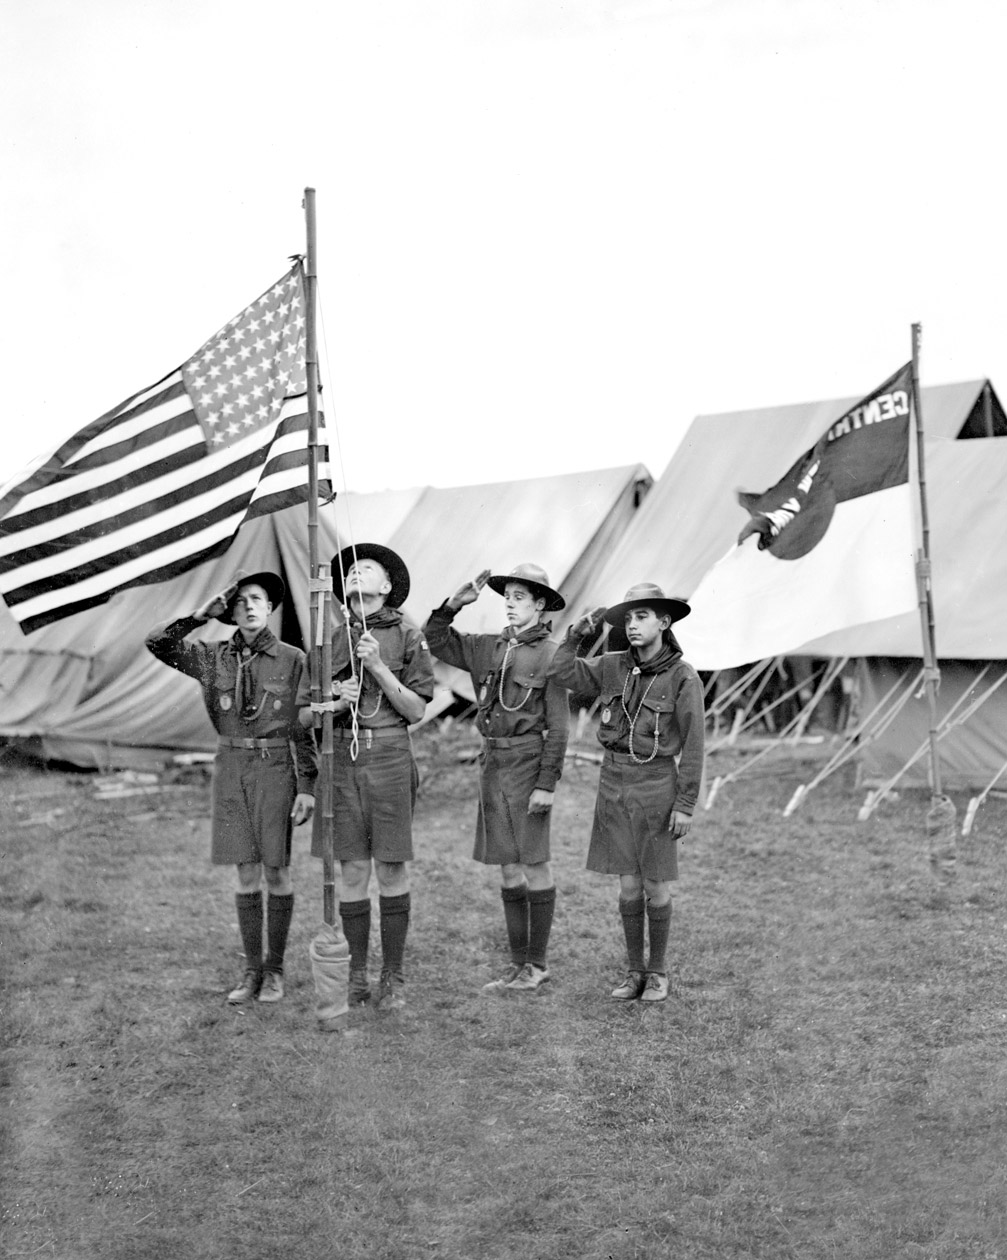 American boy scouts from New York, hauling up the American flag in front of their camp at Arrowe Park, Birkenhead in readiness for the International Scout Jamboree. United Kingdom, 1929.